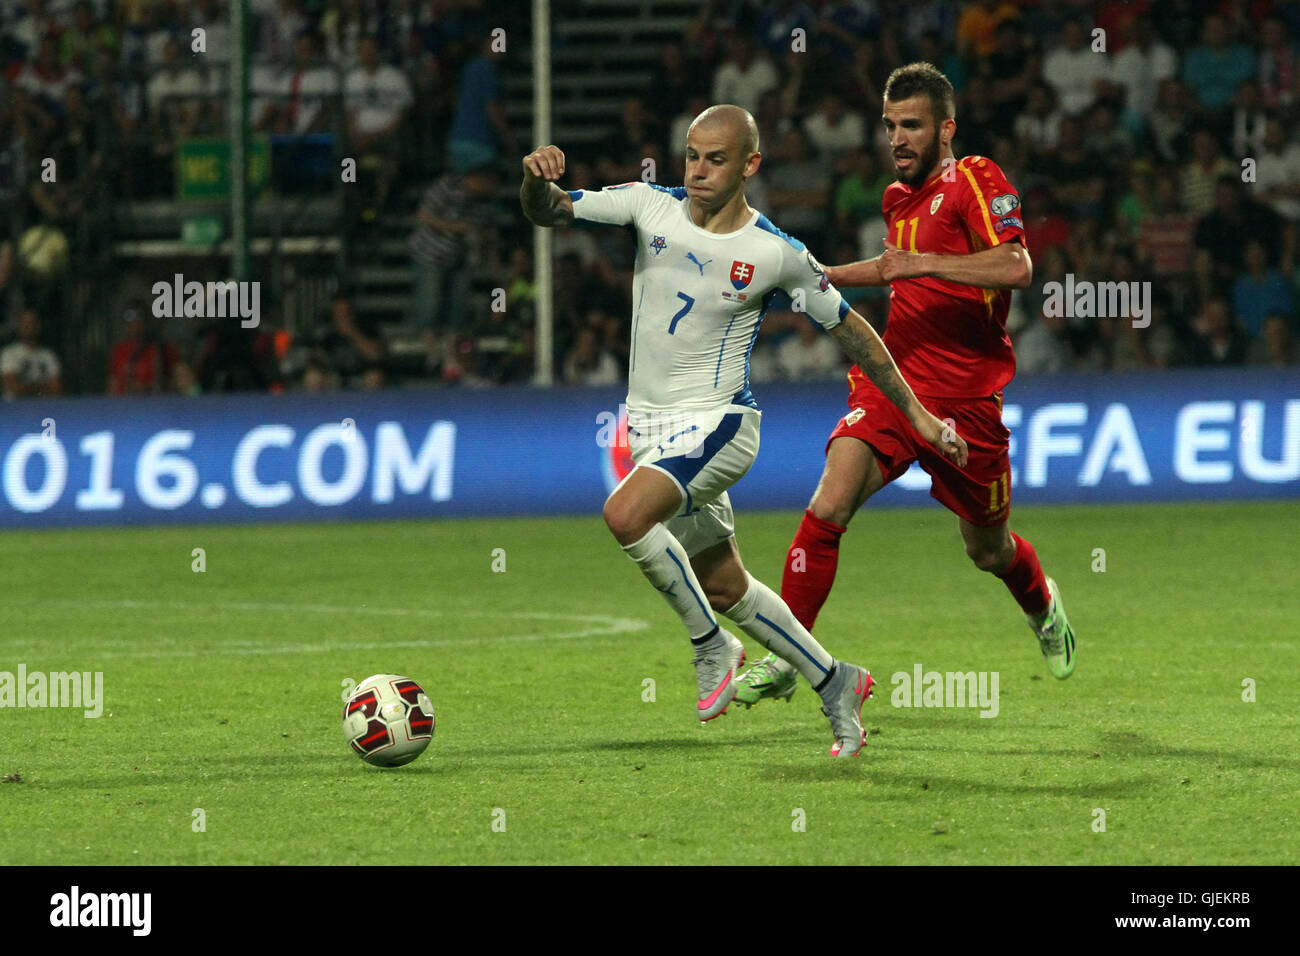 Vladimir Weiss (7) with the ball, behind him Feran Hasani (11) during the EURO 2016 qualifier Slovakia vs Macedonia - Stock Image